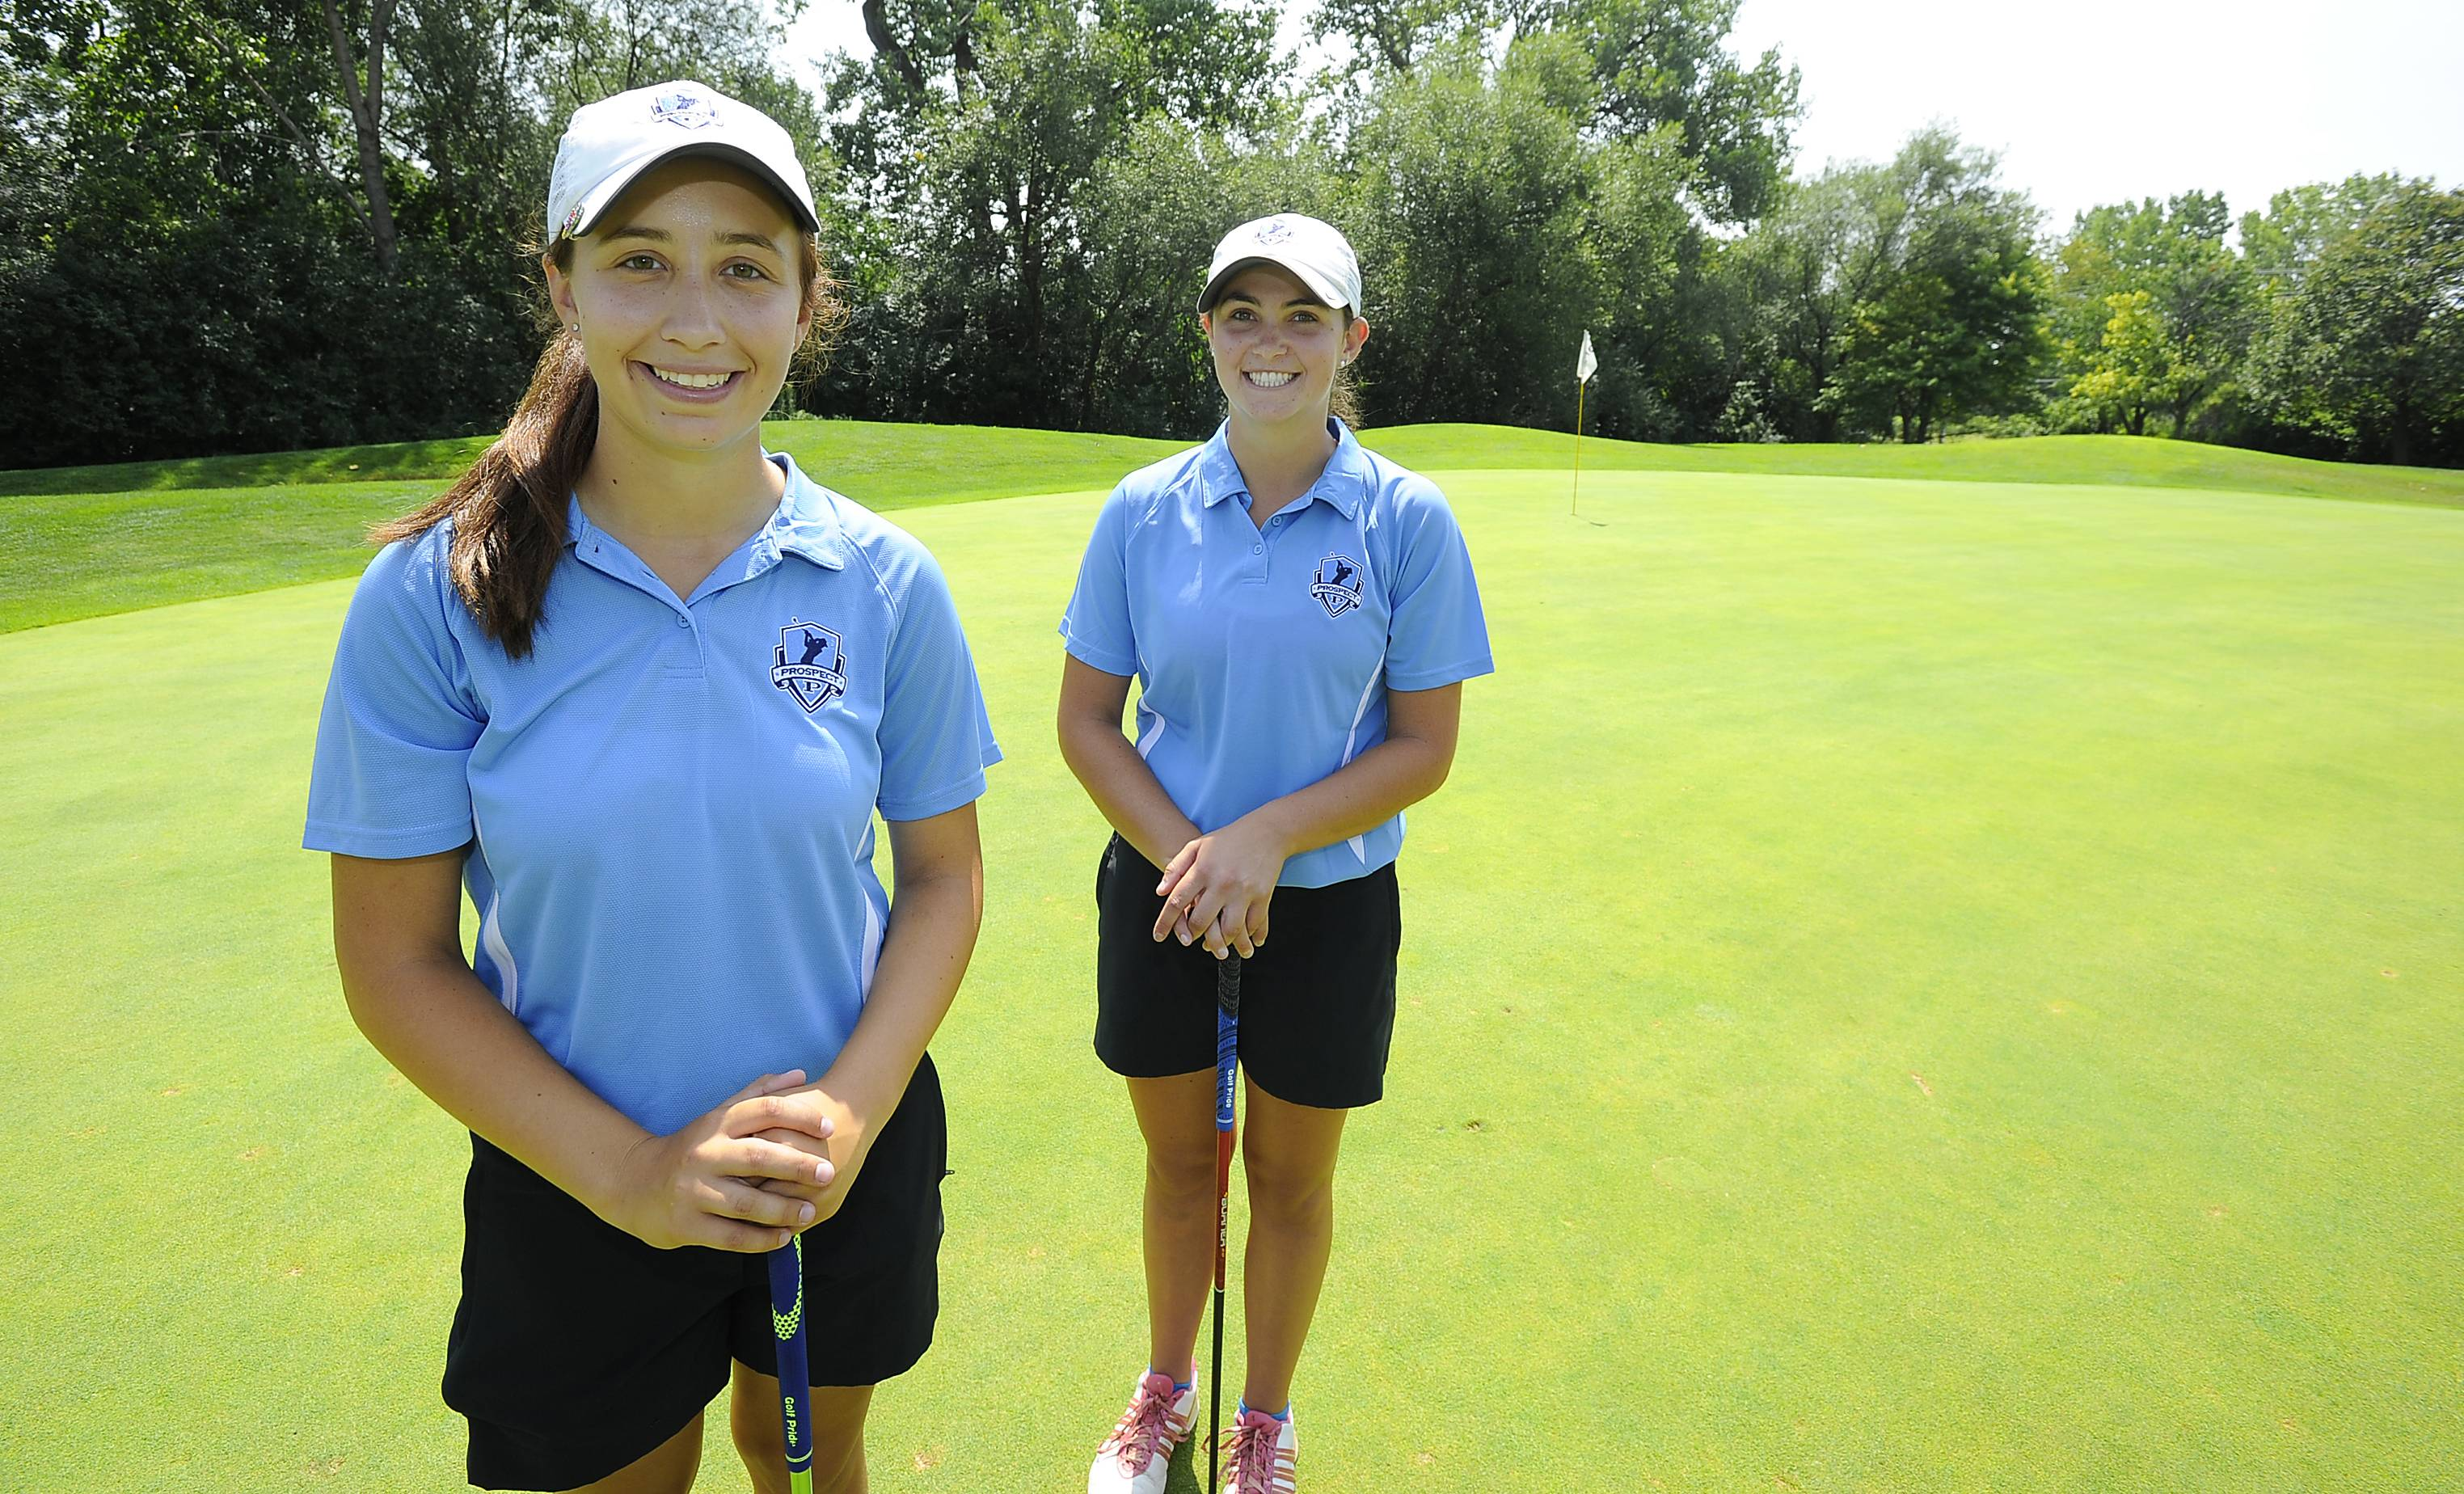 Prospect will count on Isabella Flack, left, and Kacie O'Donnell for leadership this fall.